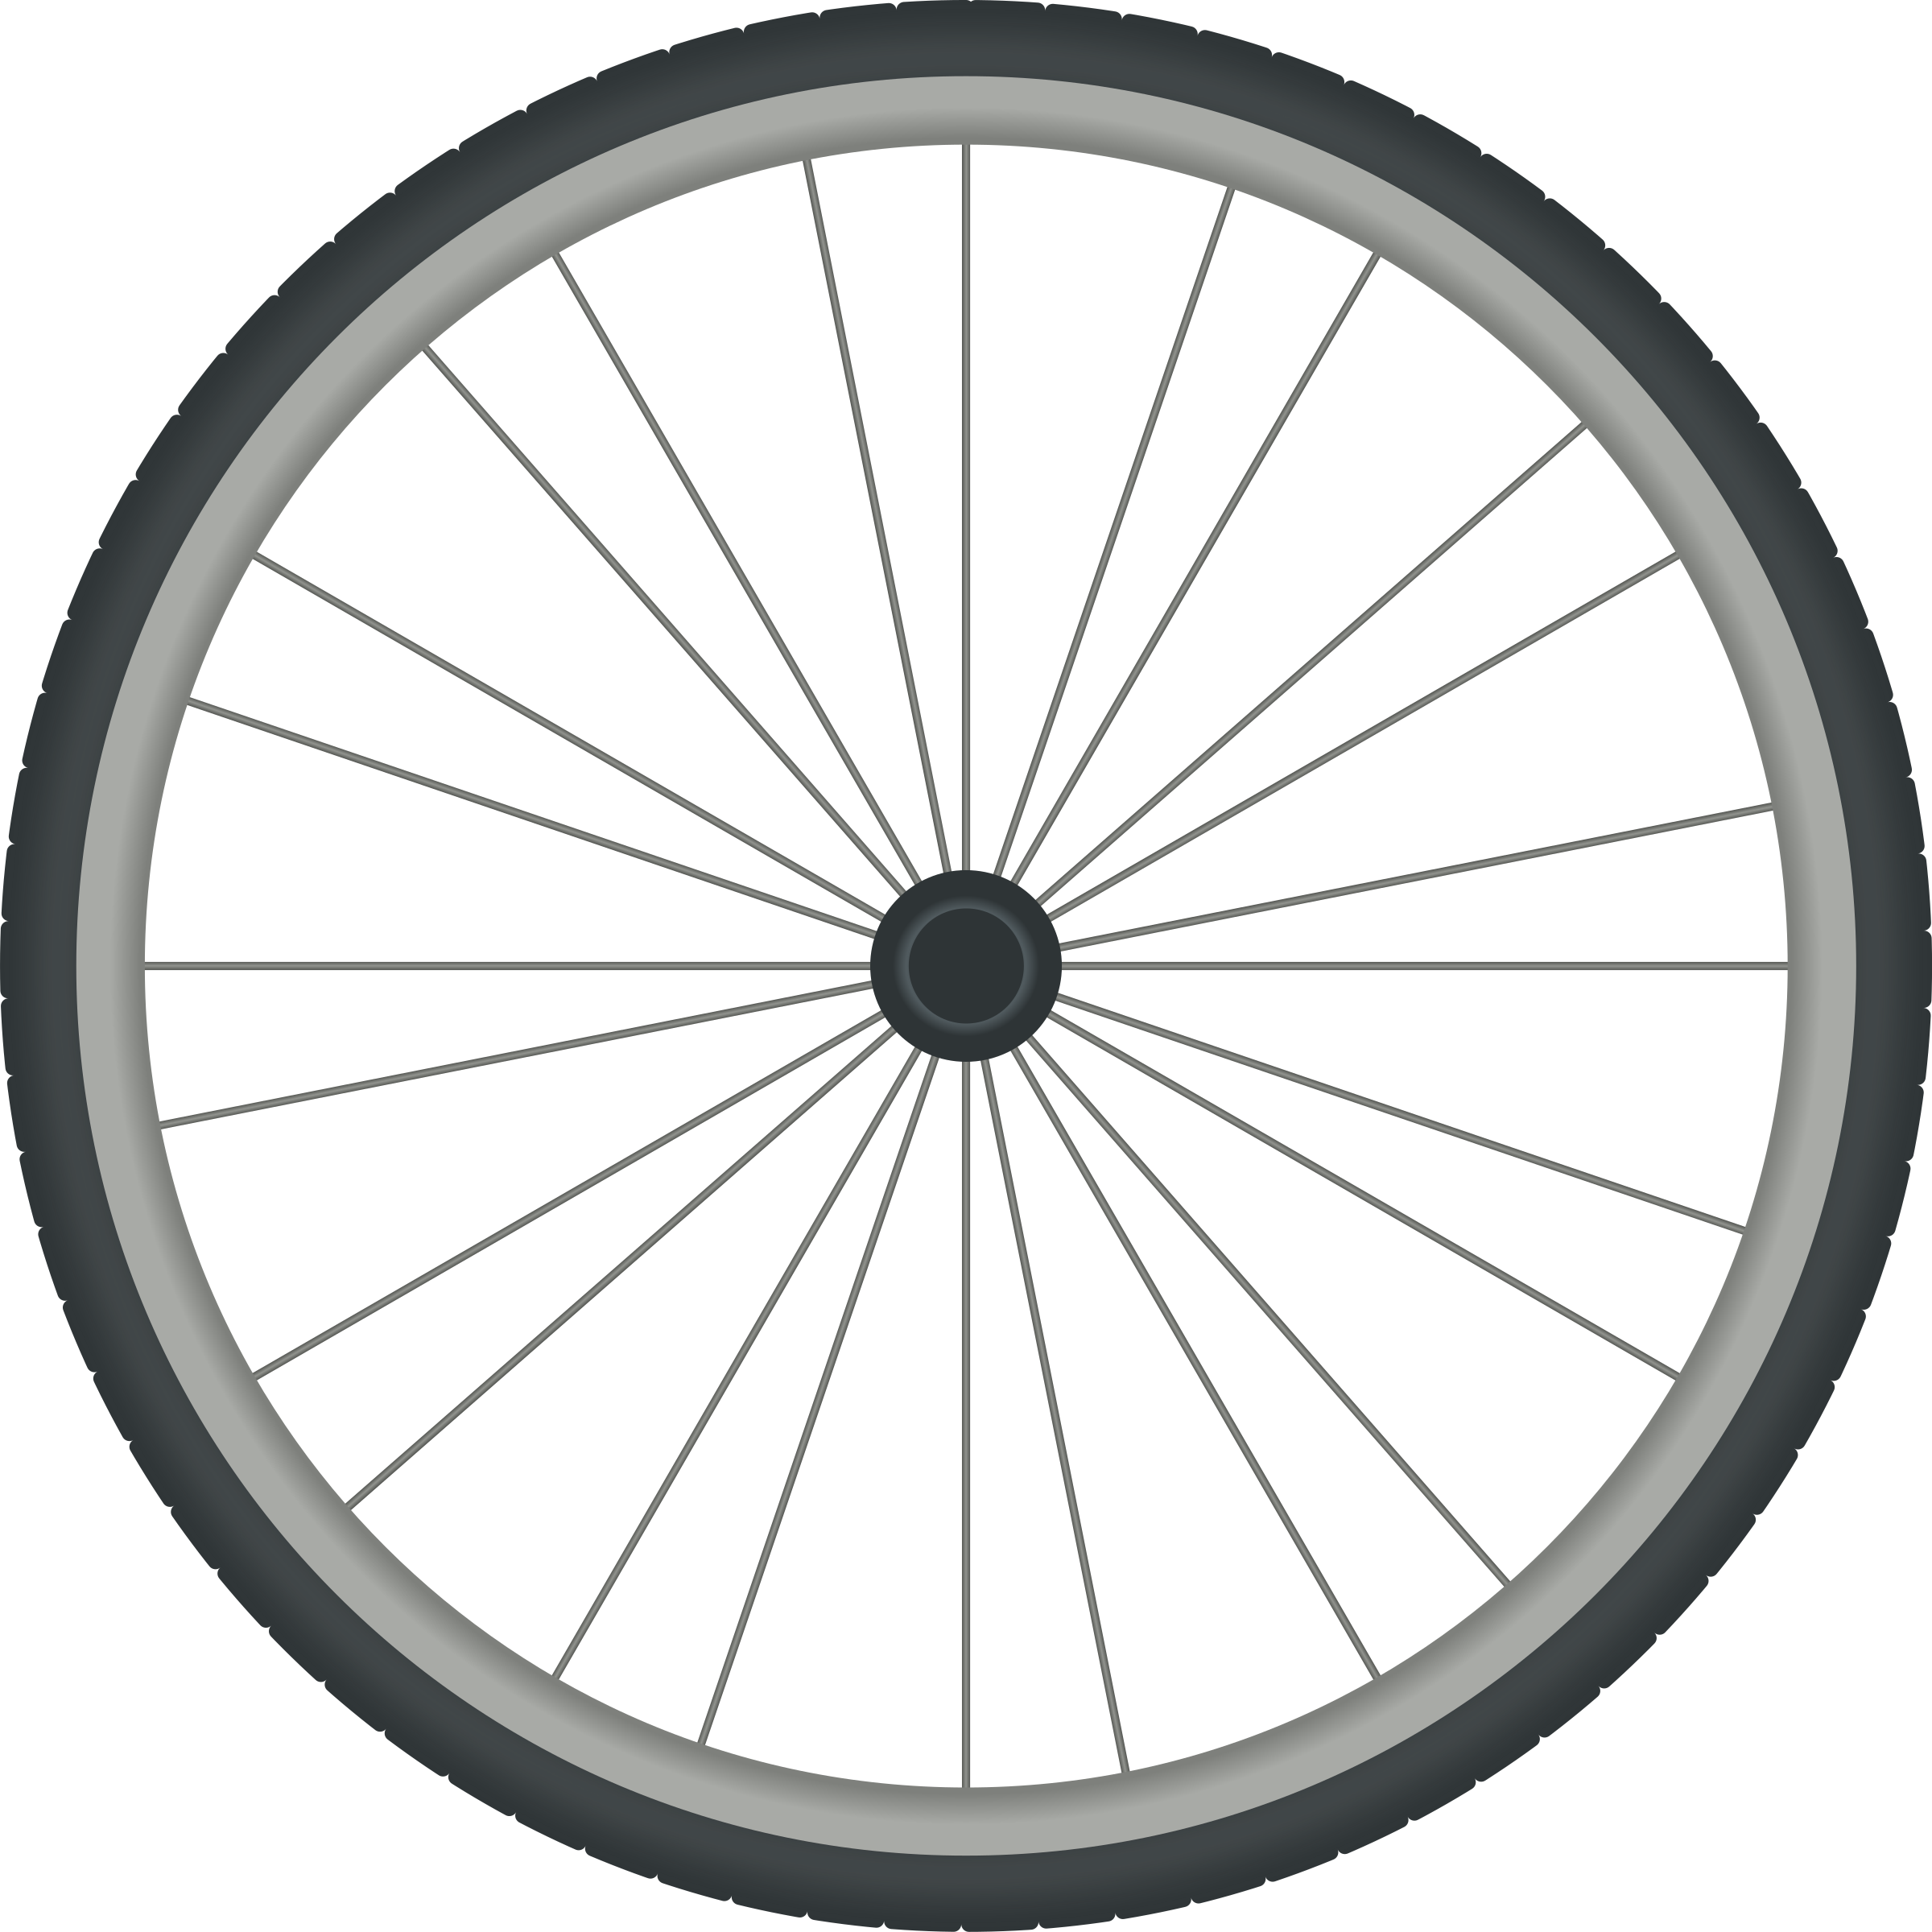 BikeWheel by carlitos